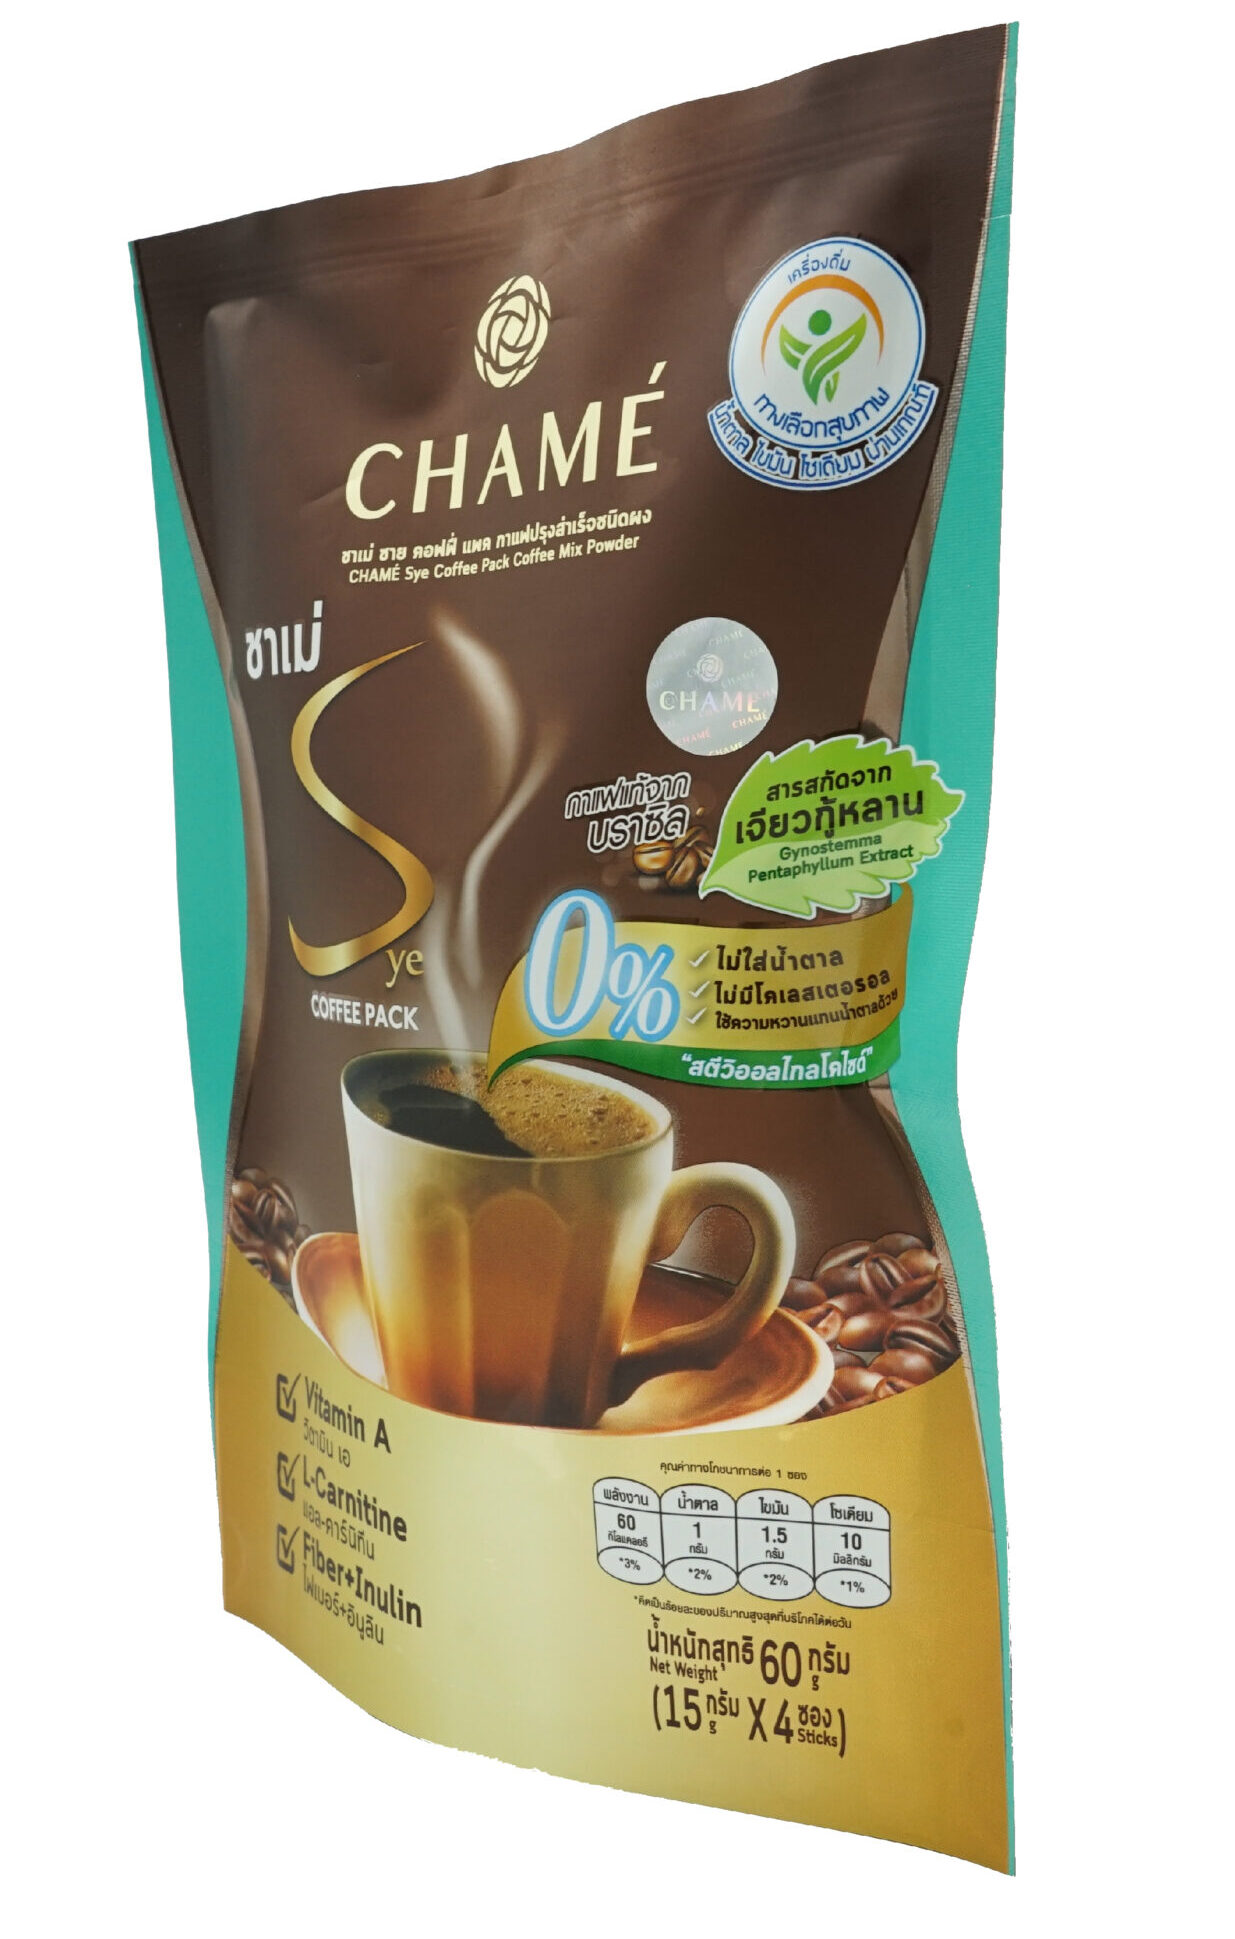 CHAME' Sye Coffee Pack